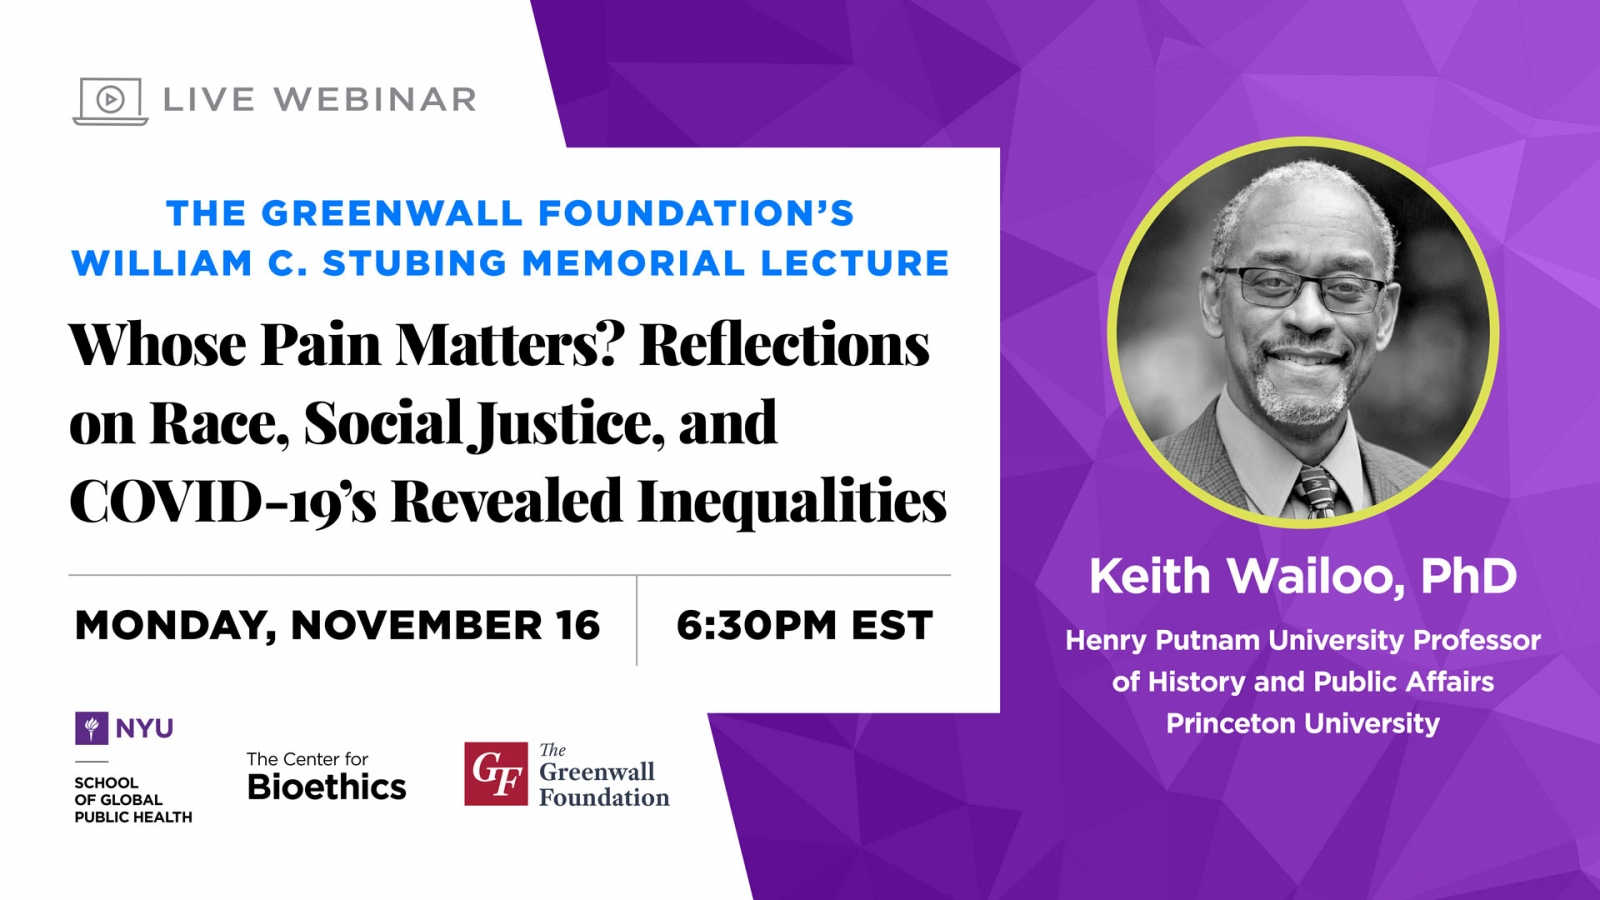 William C. Stubing Memorial Lecture: Whose Pain Matters? Reflections on Race, Social Justice, and COVID-19's Revealed Inequalities